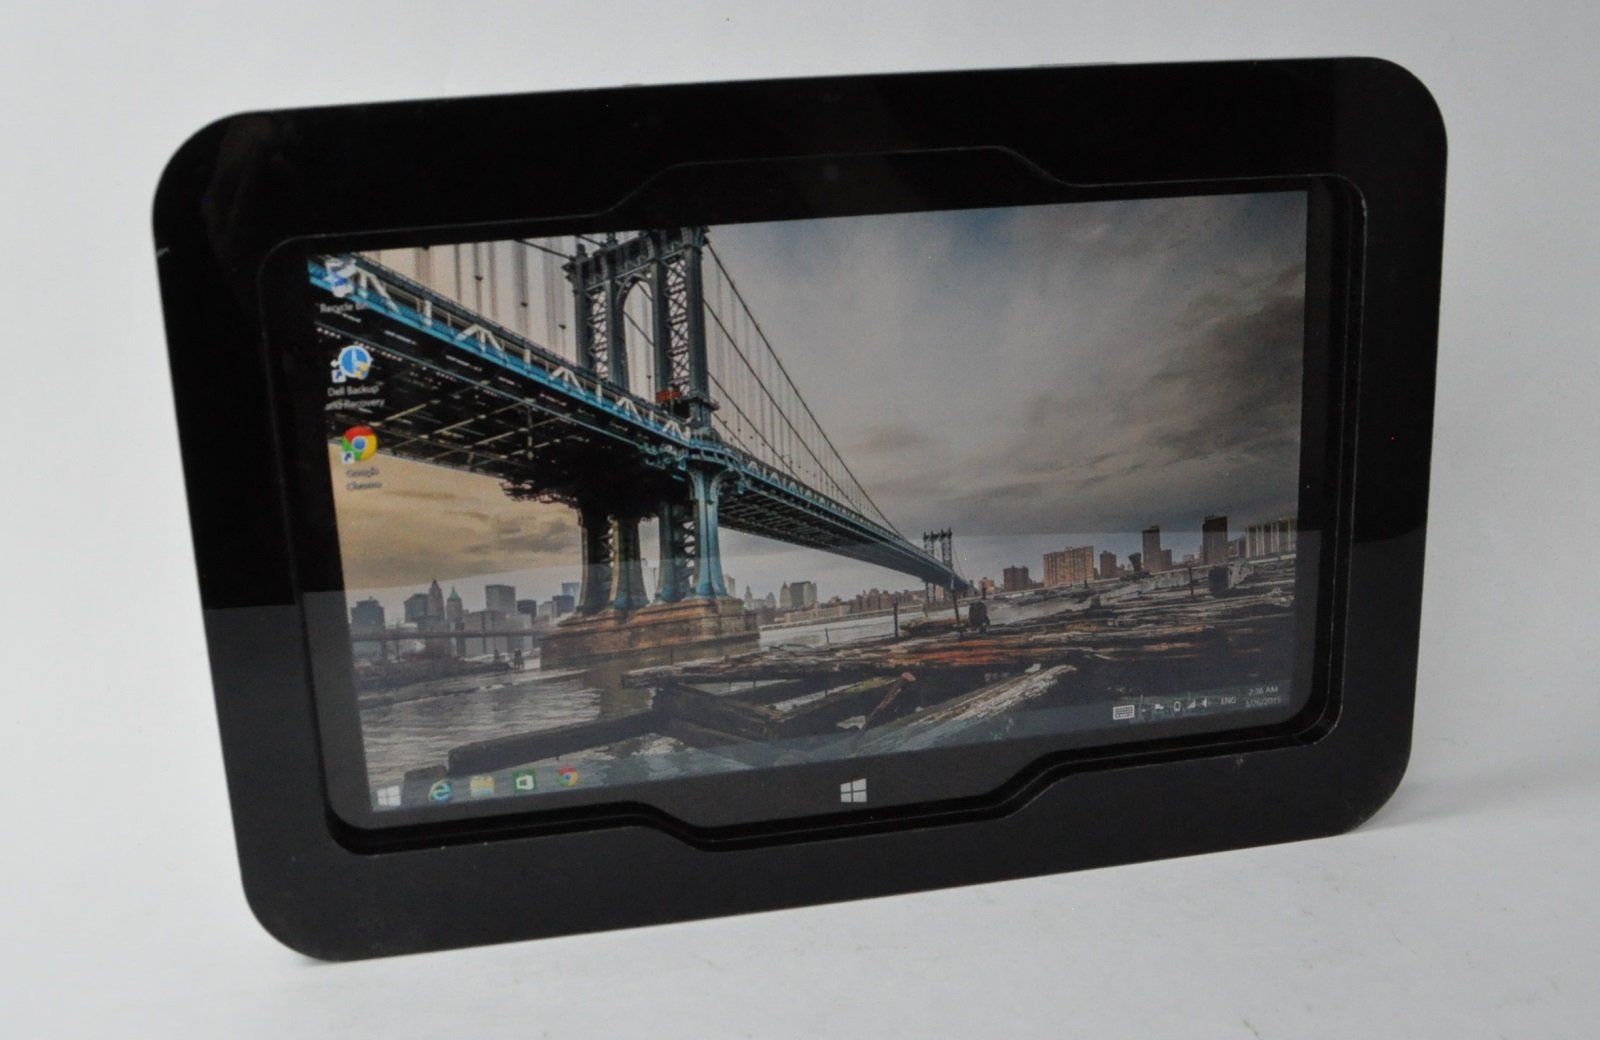 Black Acrylic VESA kit for TABcare Compatible Dell Venue 11 Pro Used as Store Display, Show Display, Kiosk, POS